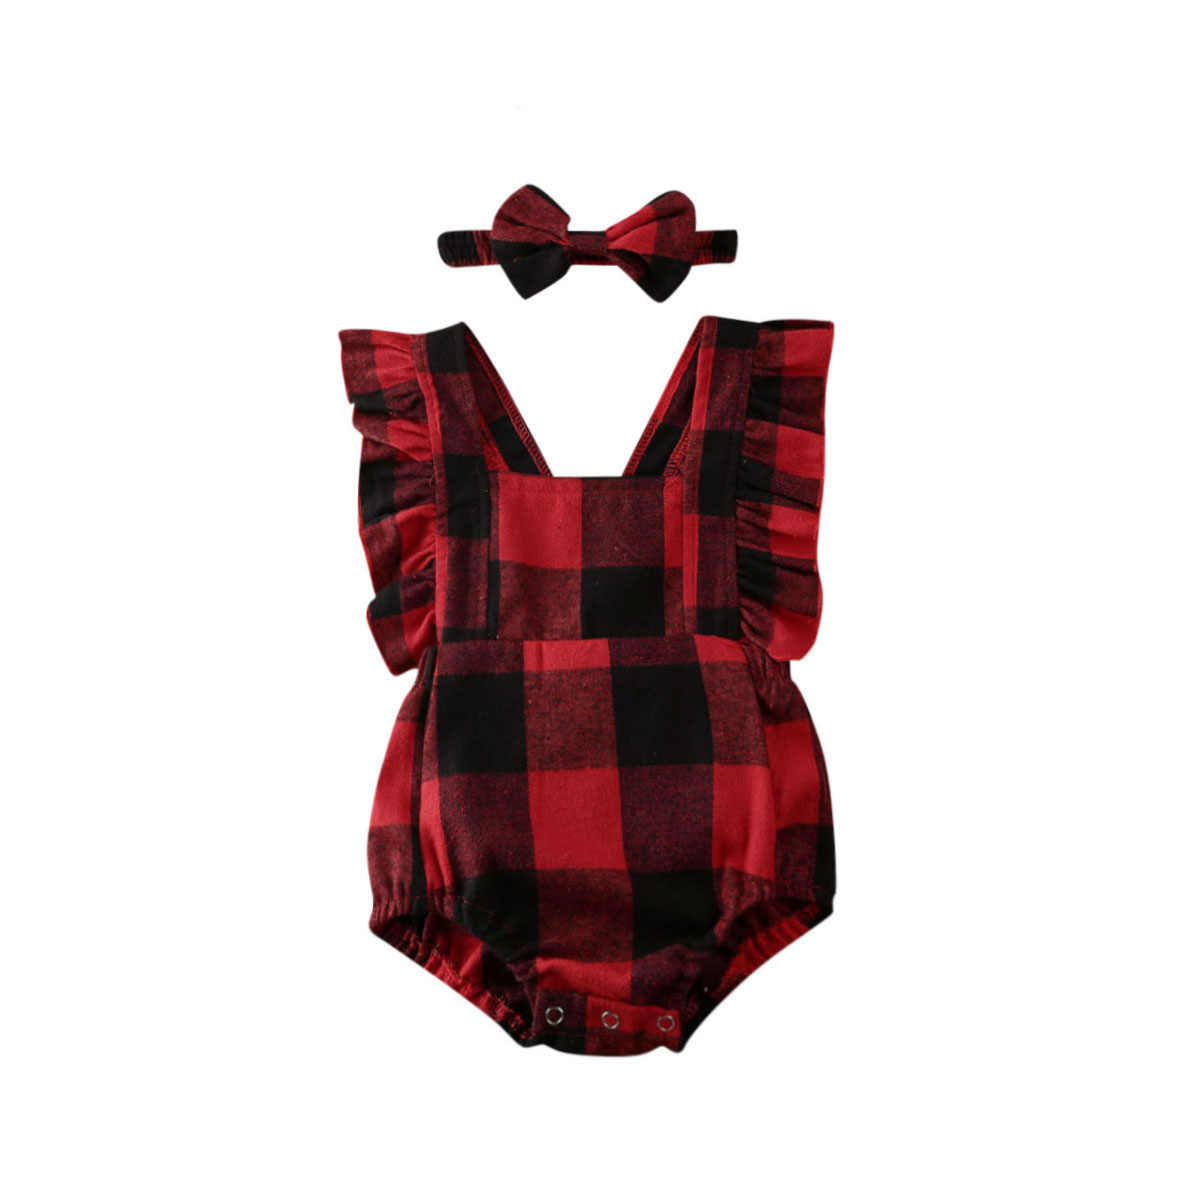 Newborn Baby Boy Girl Christmas Clothe Checks Plaid Romper Sleeveless Jumpsuit Headband Outfit Clothing